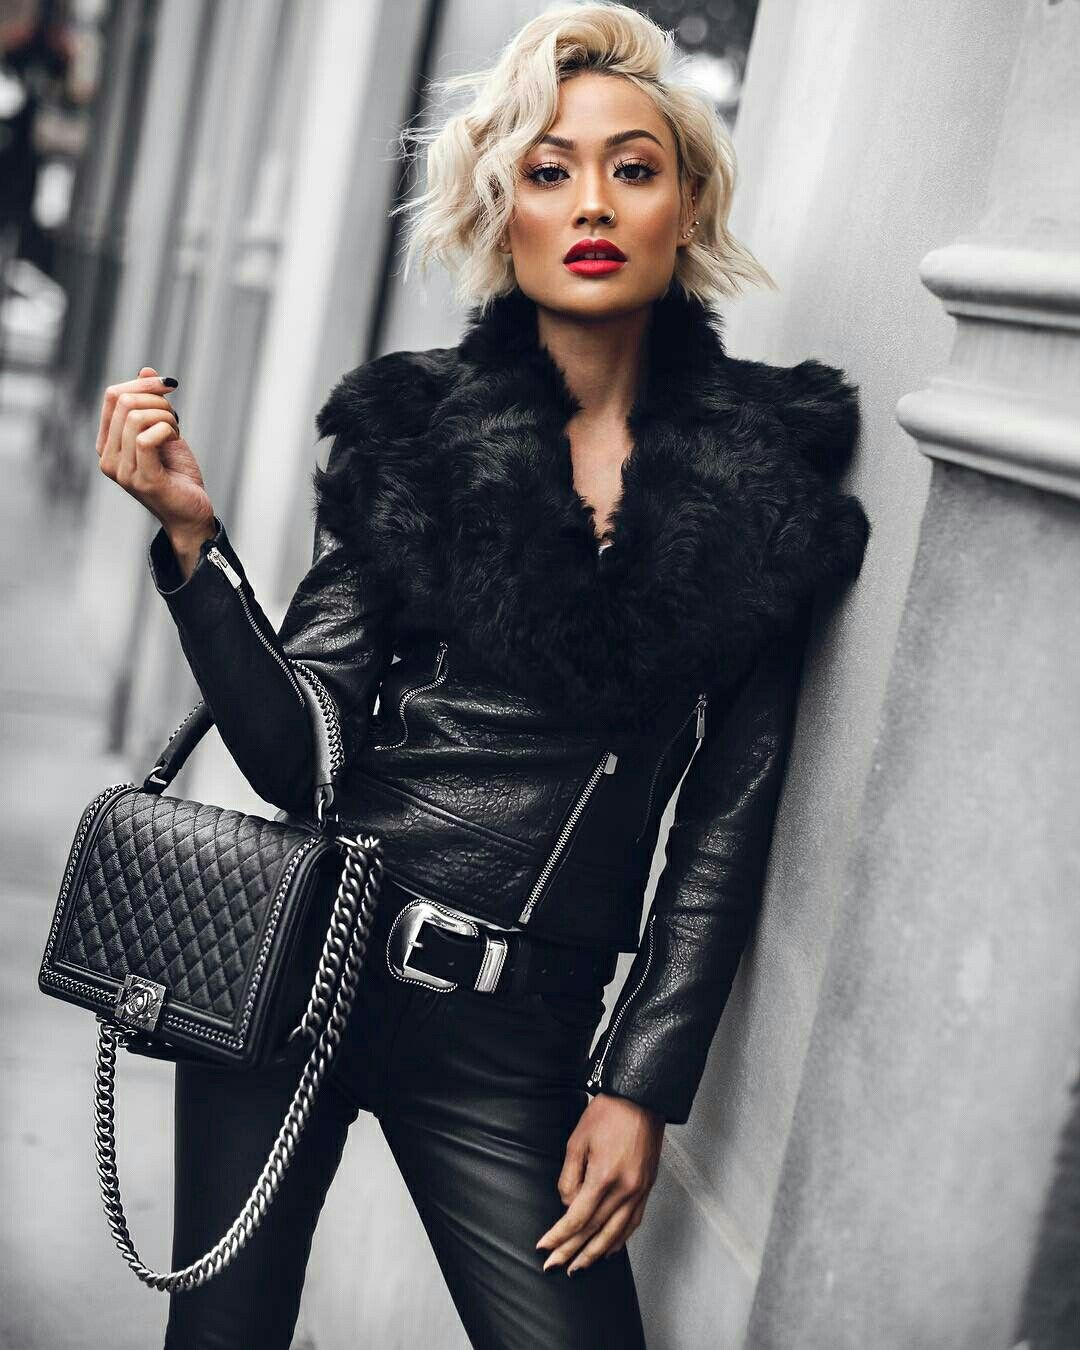 Pin by Silvia Piccinini Costenaro on Women's style | Fashion, Micah  gianneli, Leather street style